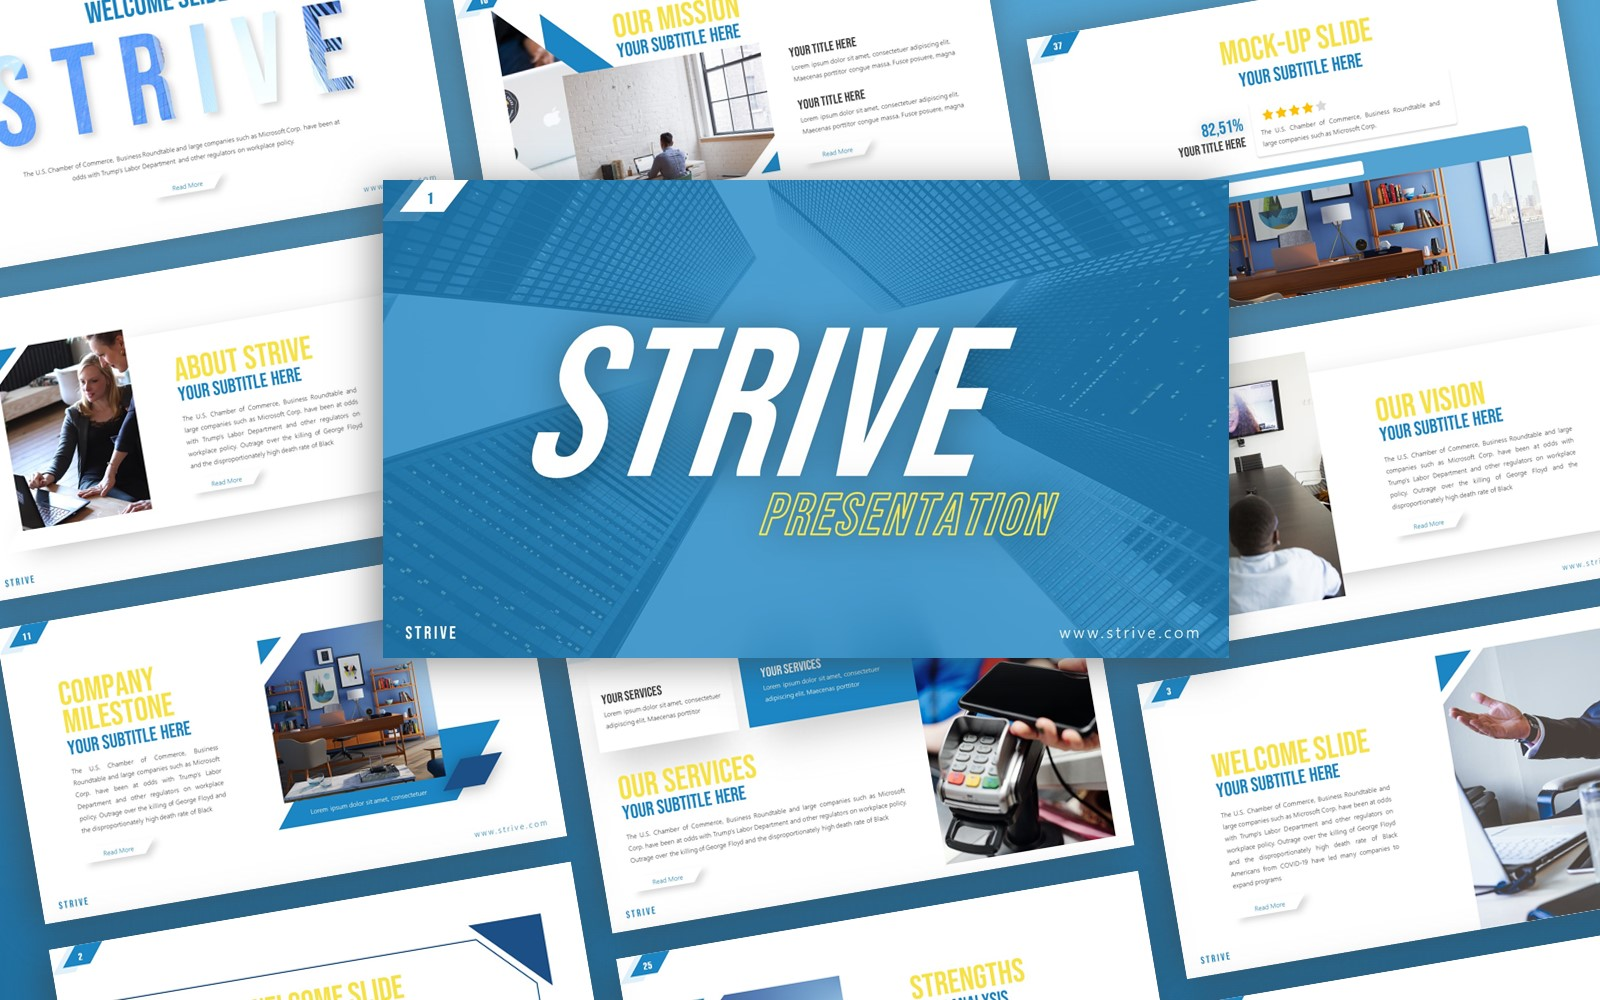 Strive Corporate Presentation PowerPoint Template